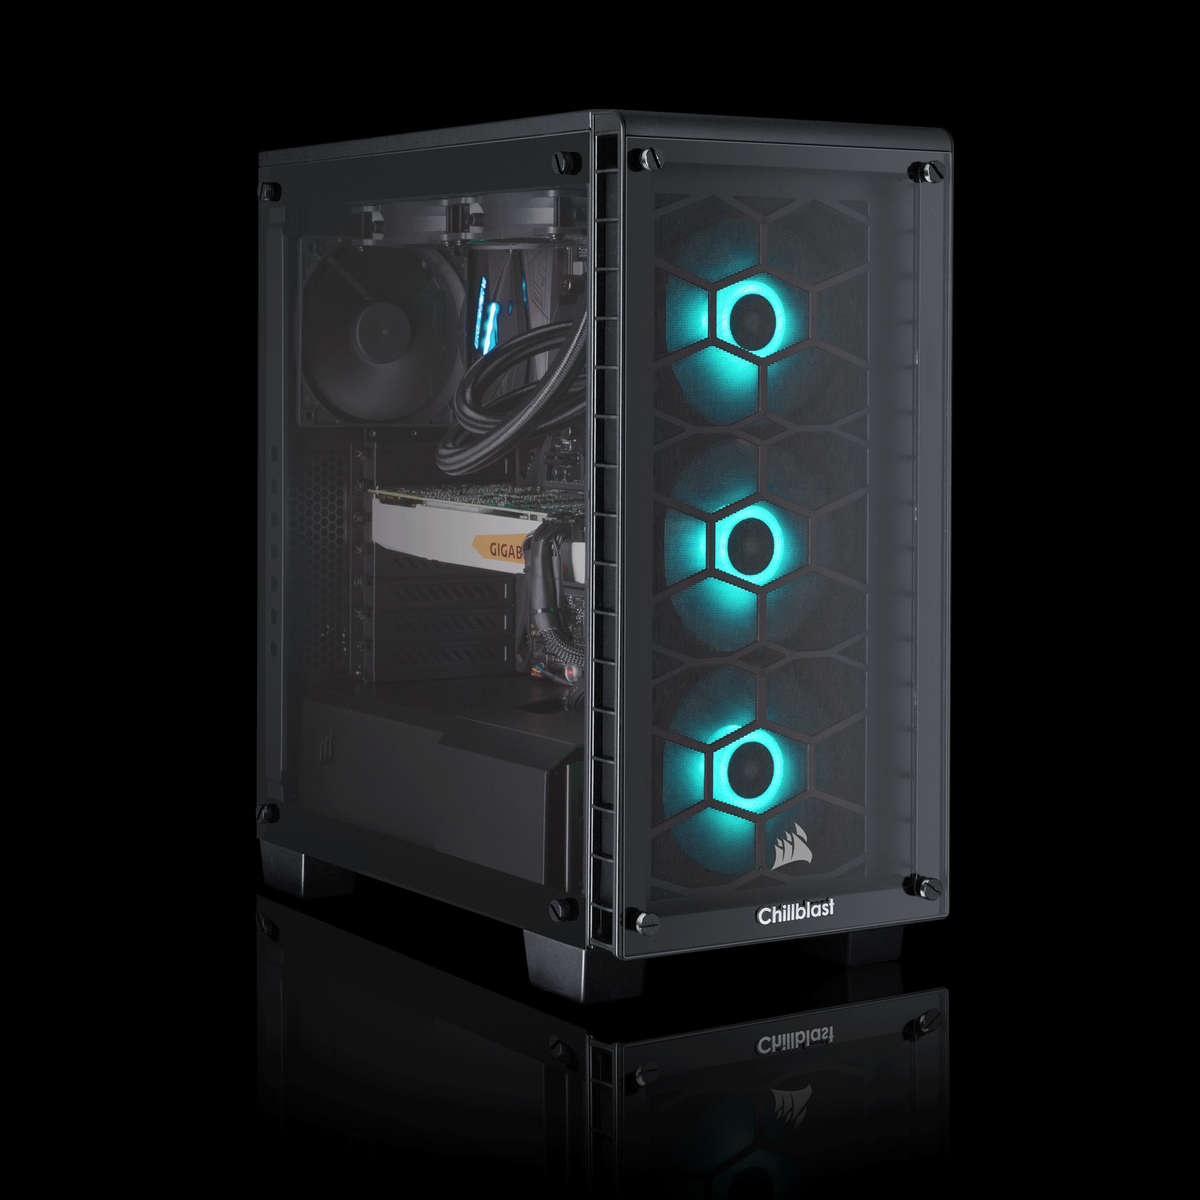 Image of the pre-built Chillblast Nova Advanced Gaming PC against a dark background.